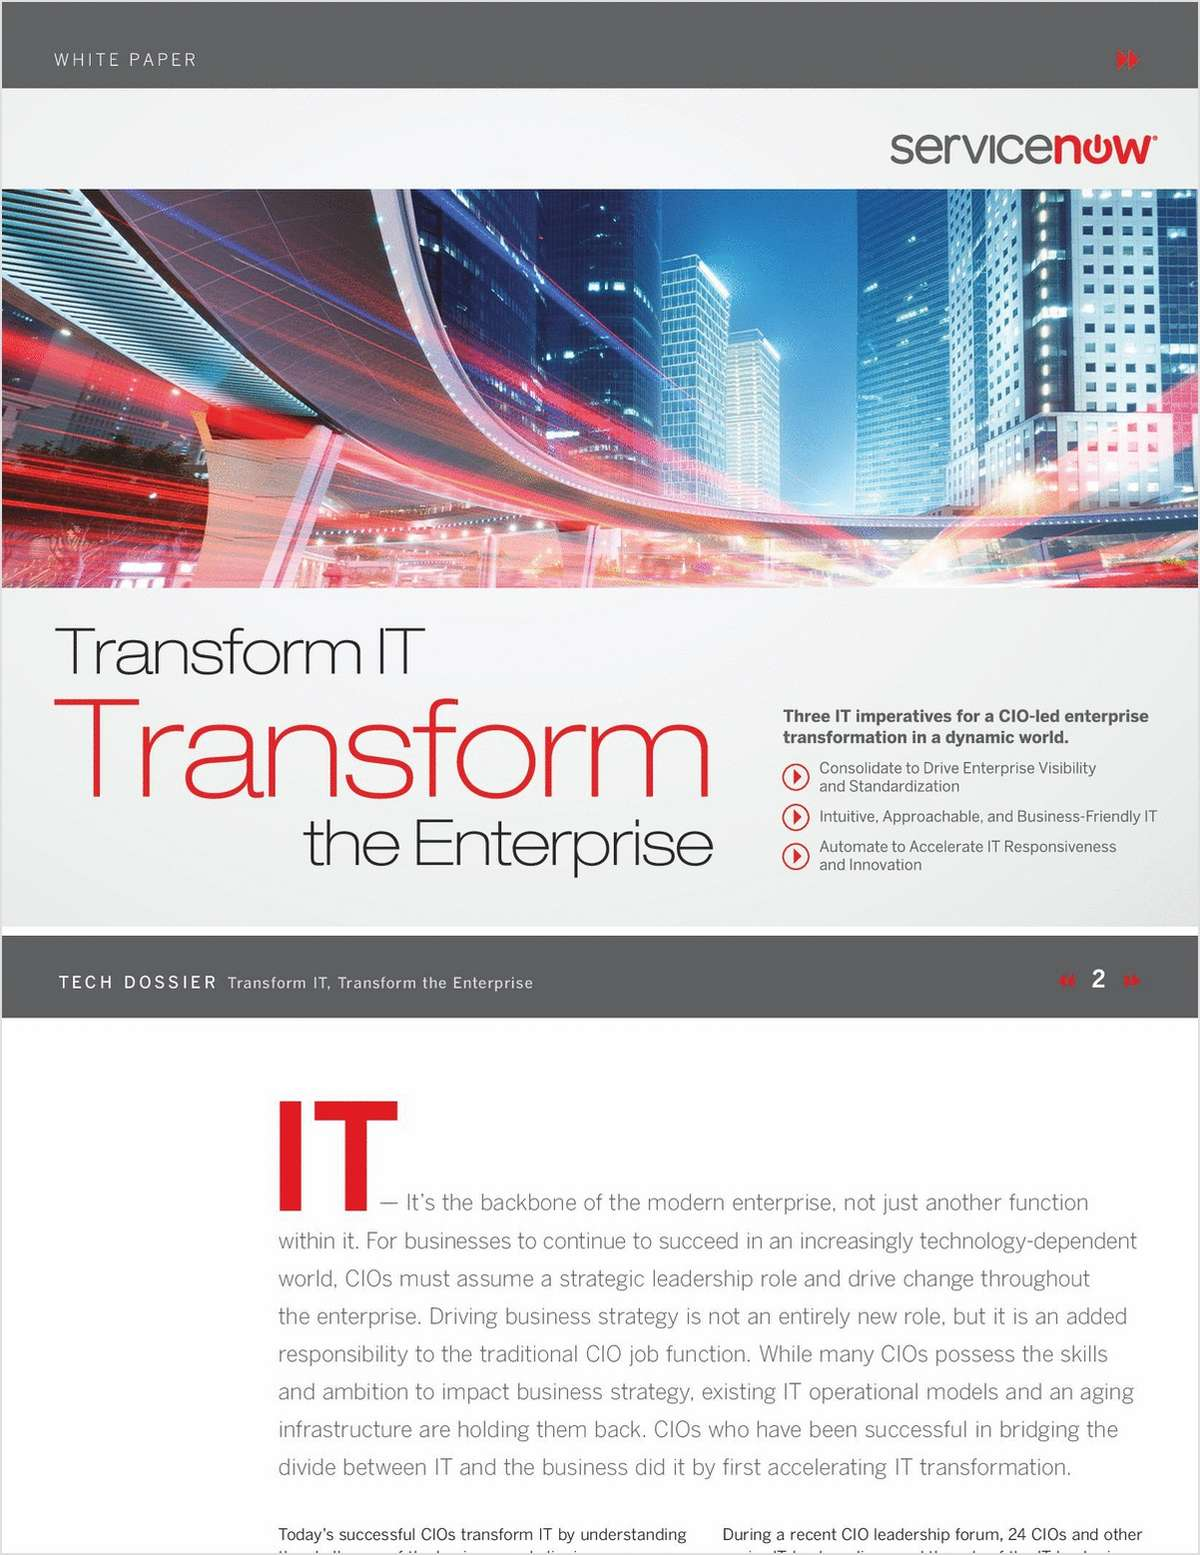 Three IT Imperatives CIOs Use To Drive Change Throughout the Enterprise